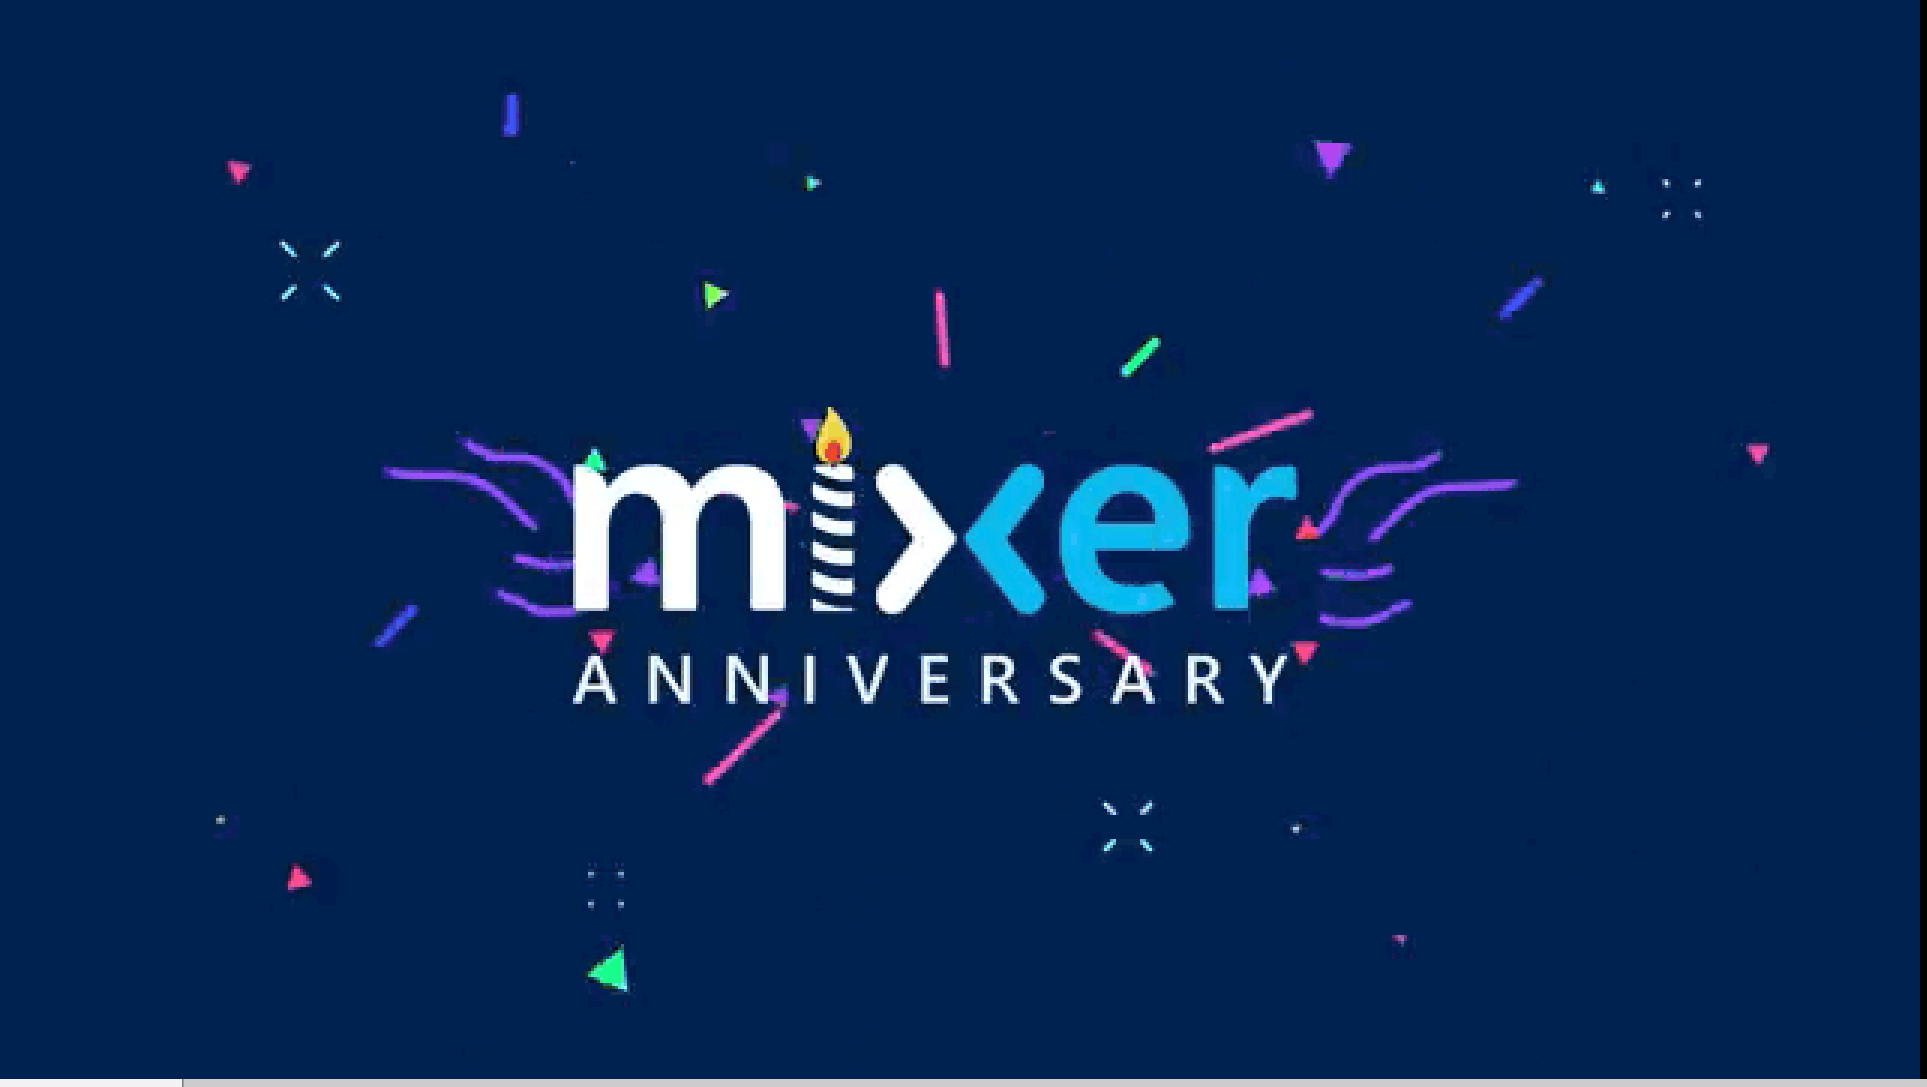 Microsoft's Mixer fate is looking a lot like Windows Phone at the moment OnMSFT.com January 20, 2020